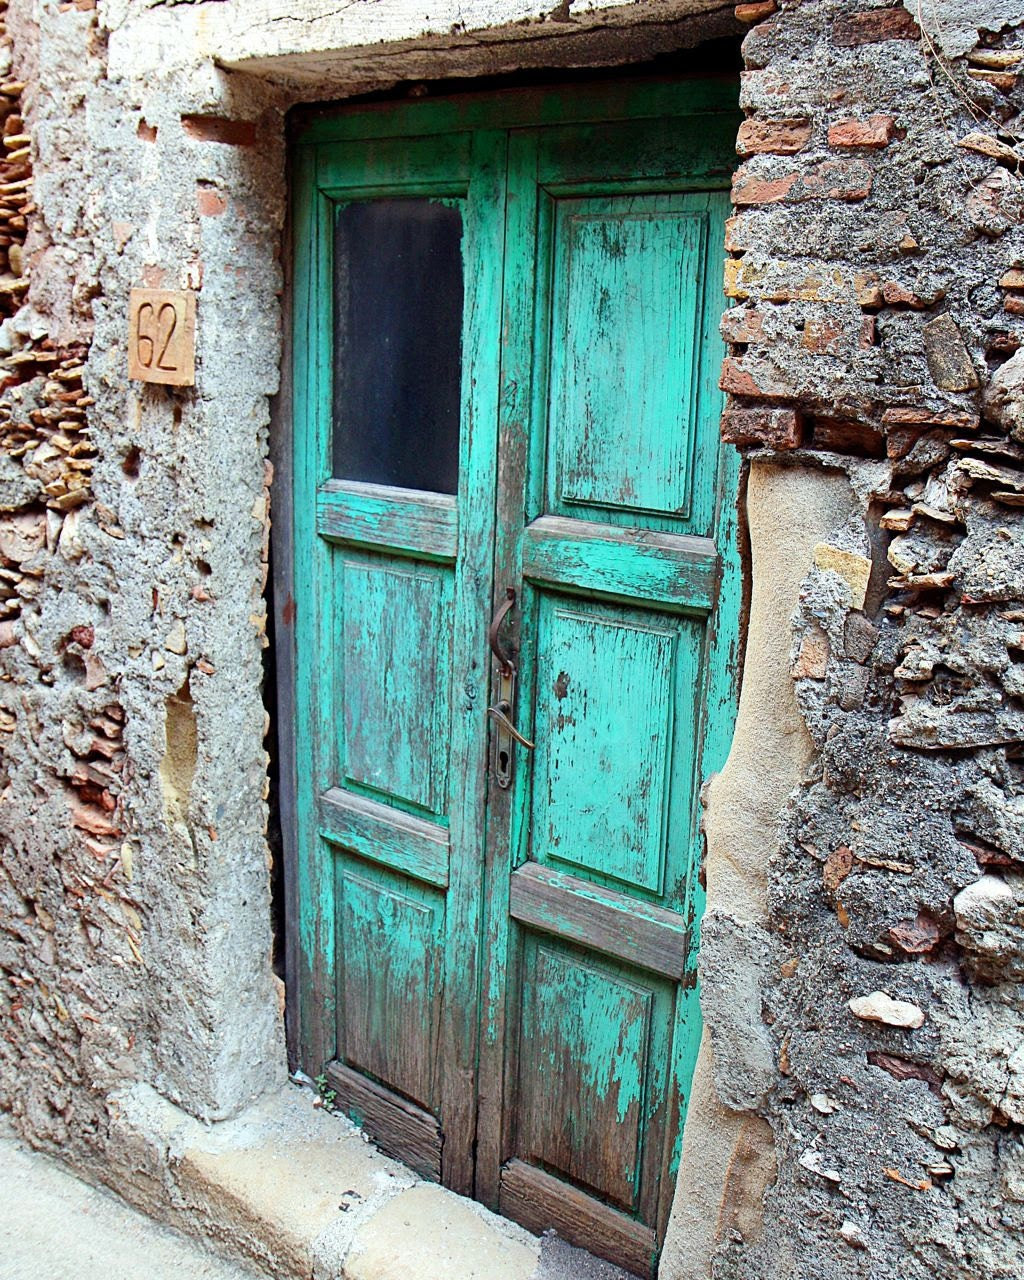 Turquoise Decor - Aqua Door Photograph - Sicily Italy Photo - Old Blue Door Photography - Rustic Turquoise - Stone Wood - Natural Farmhouse